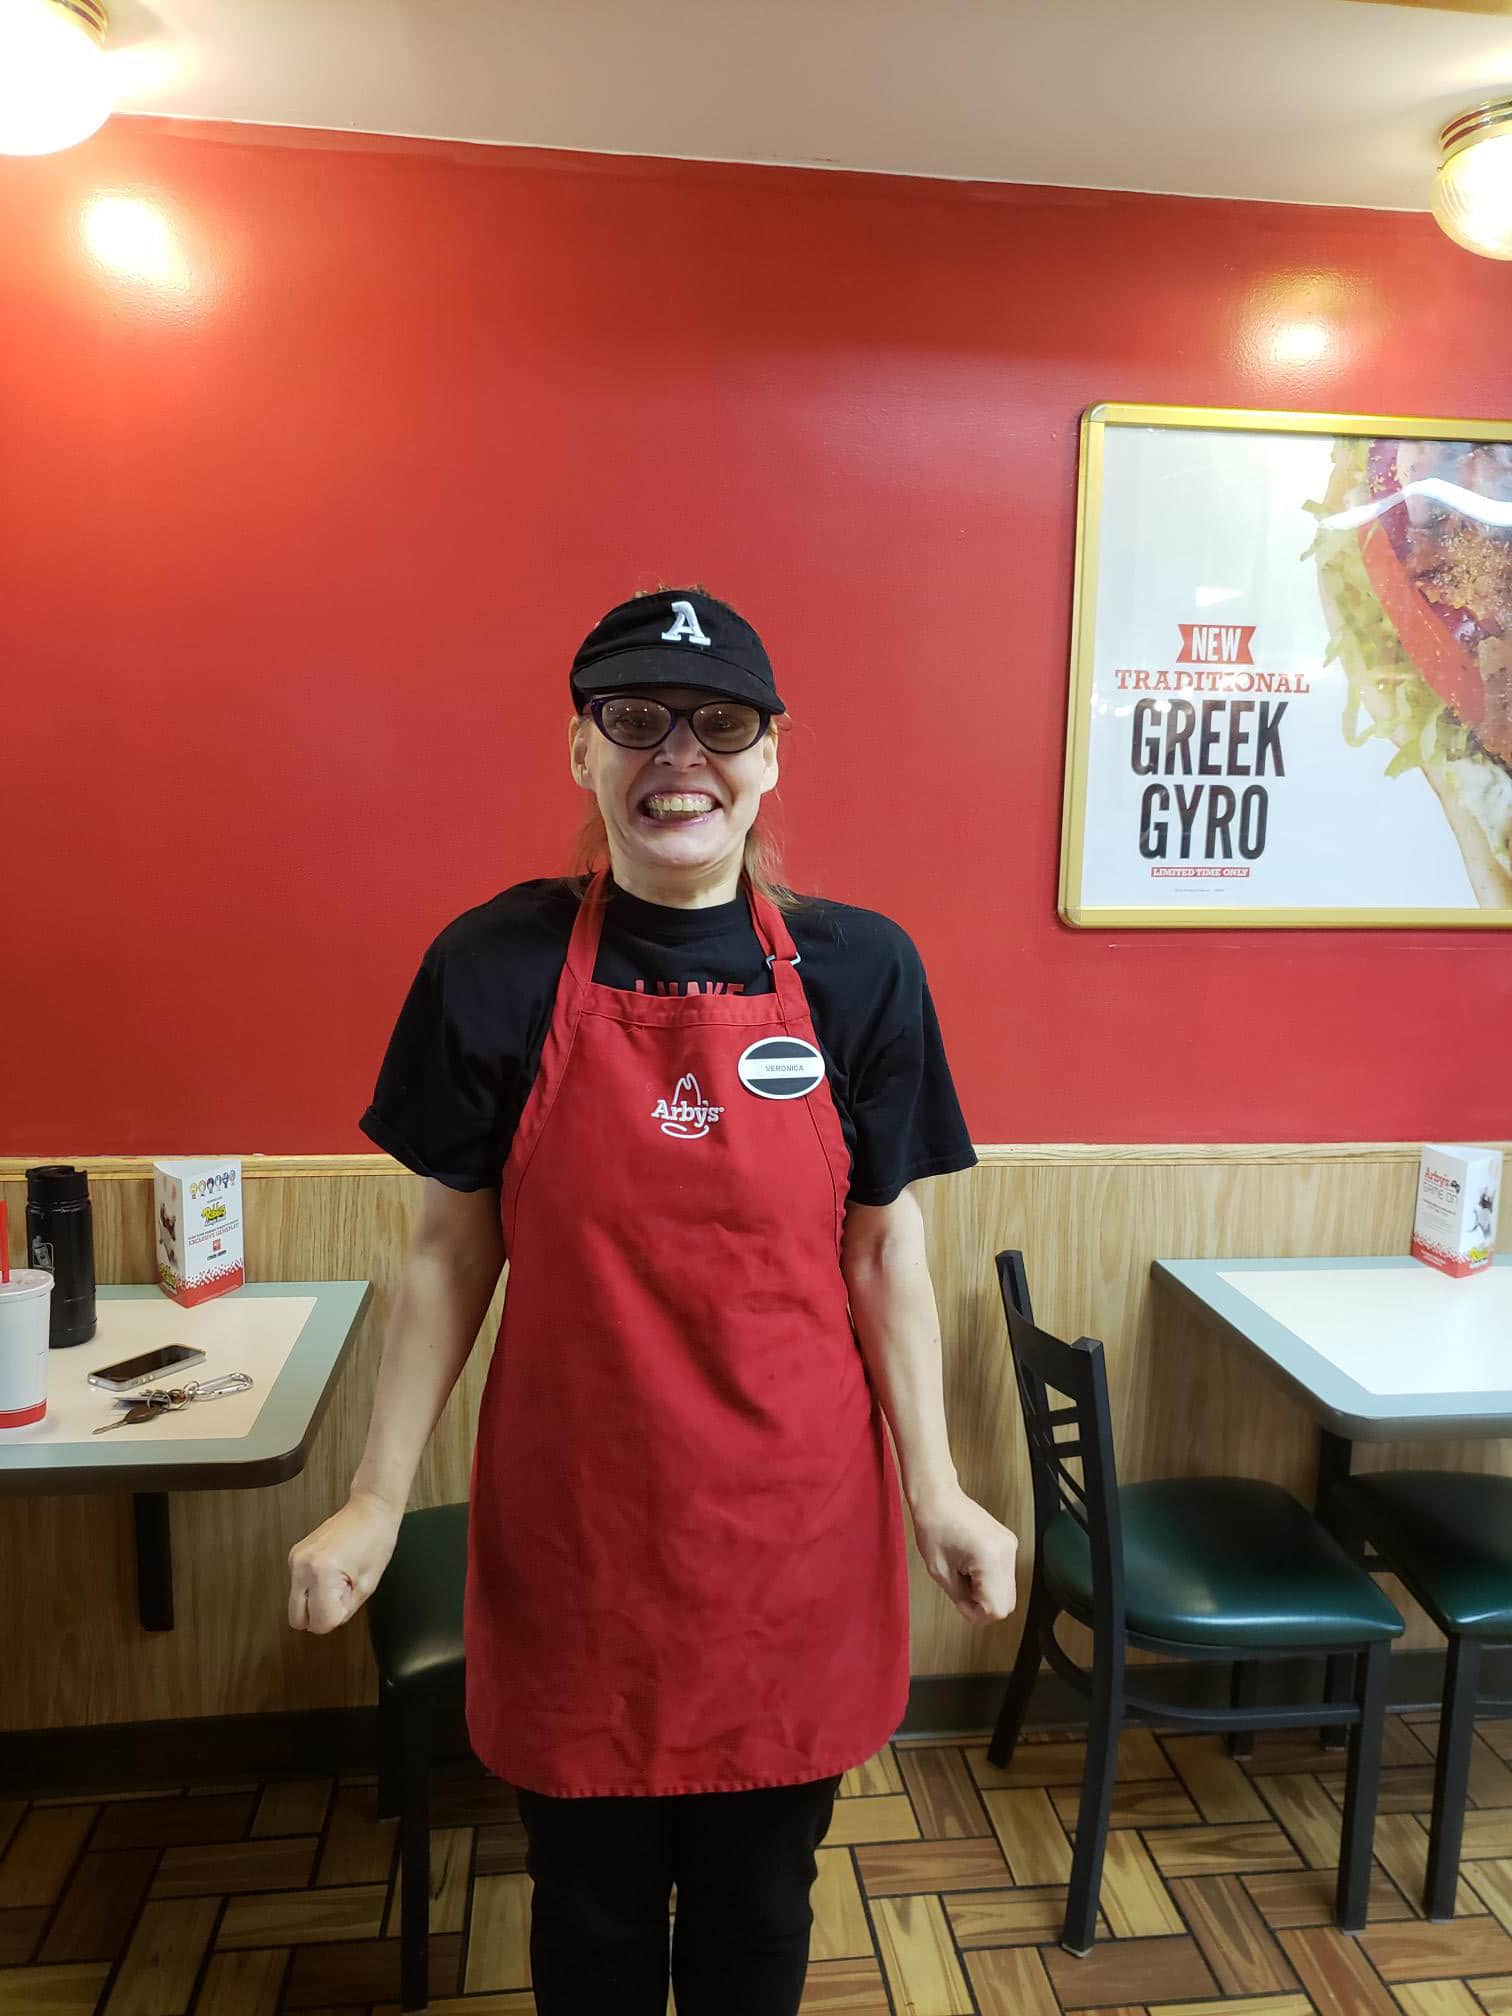 Veronica is a Cashier at Arby's restaurant Binghamton, NY